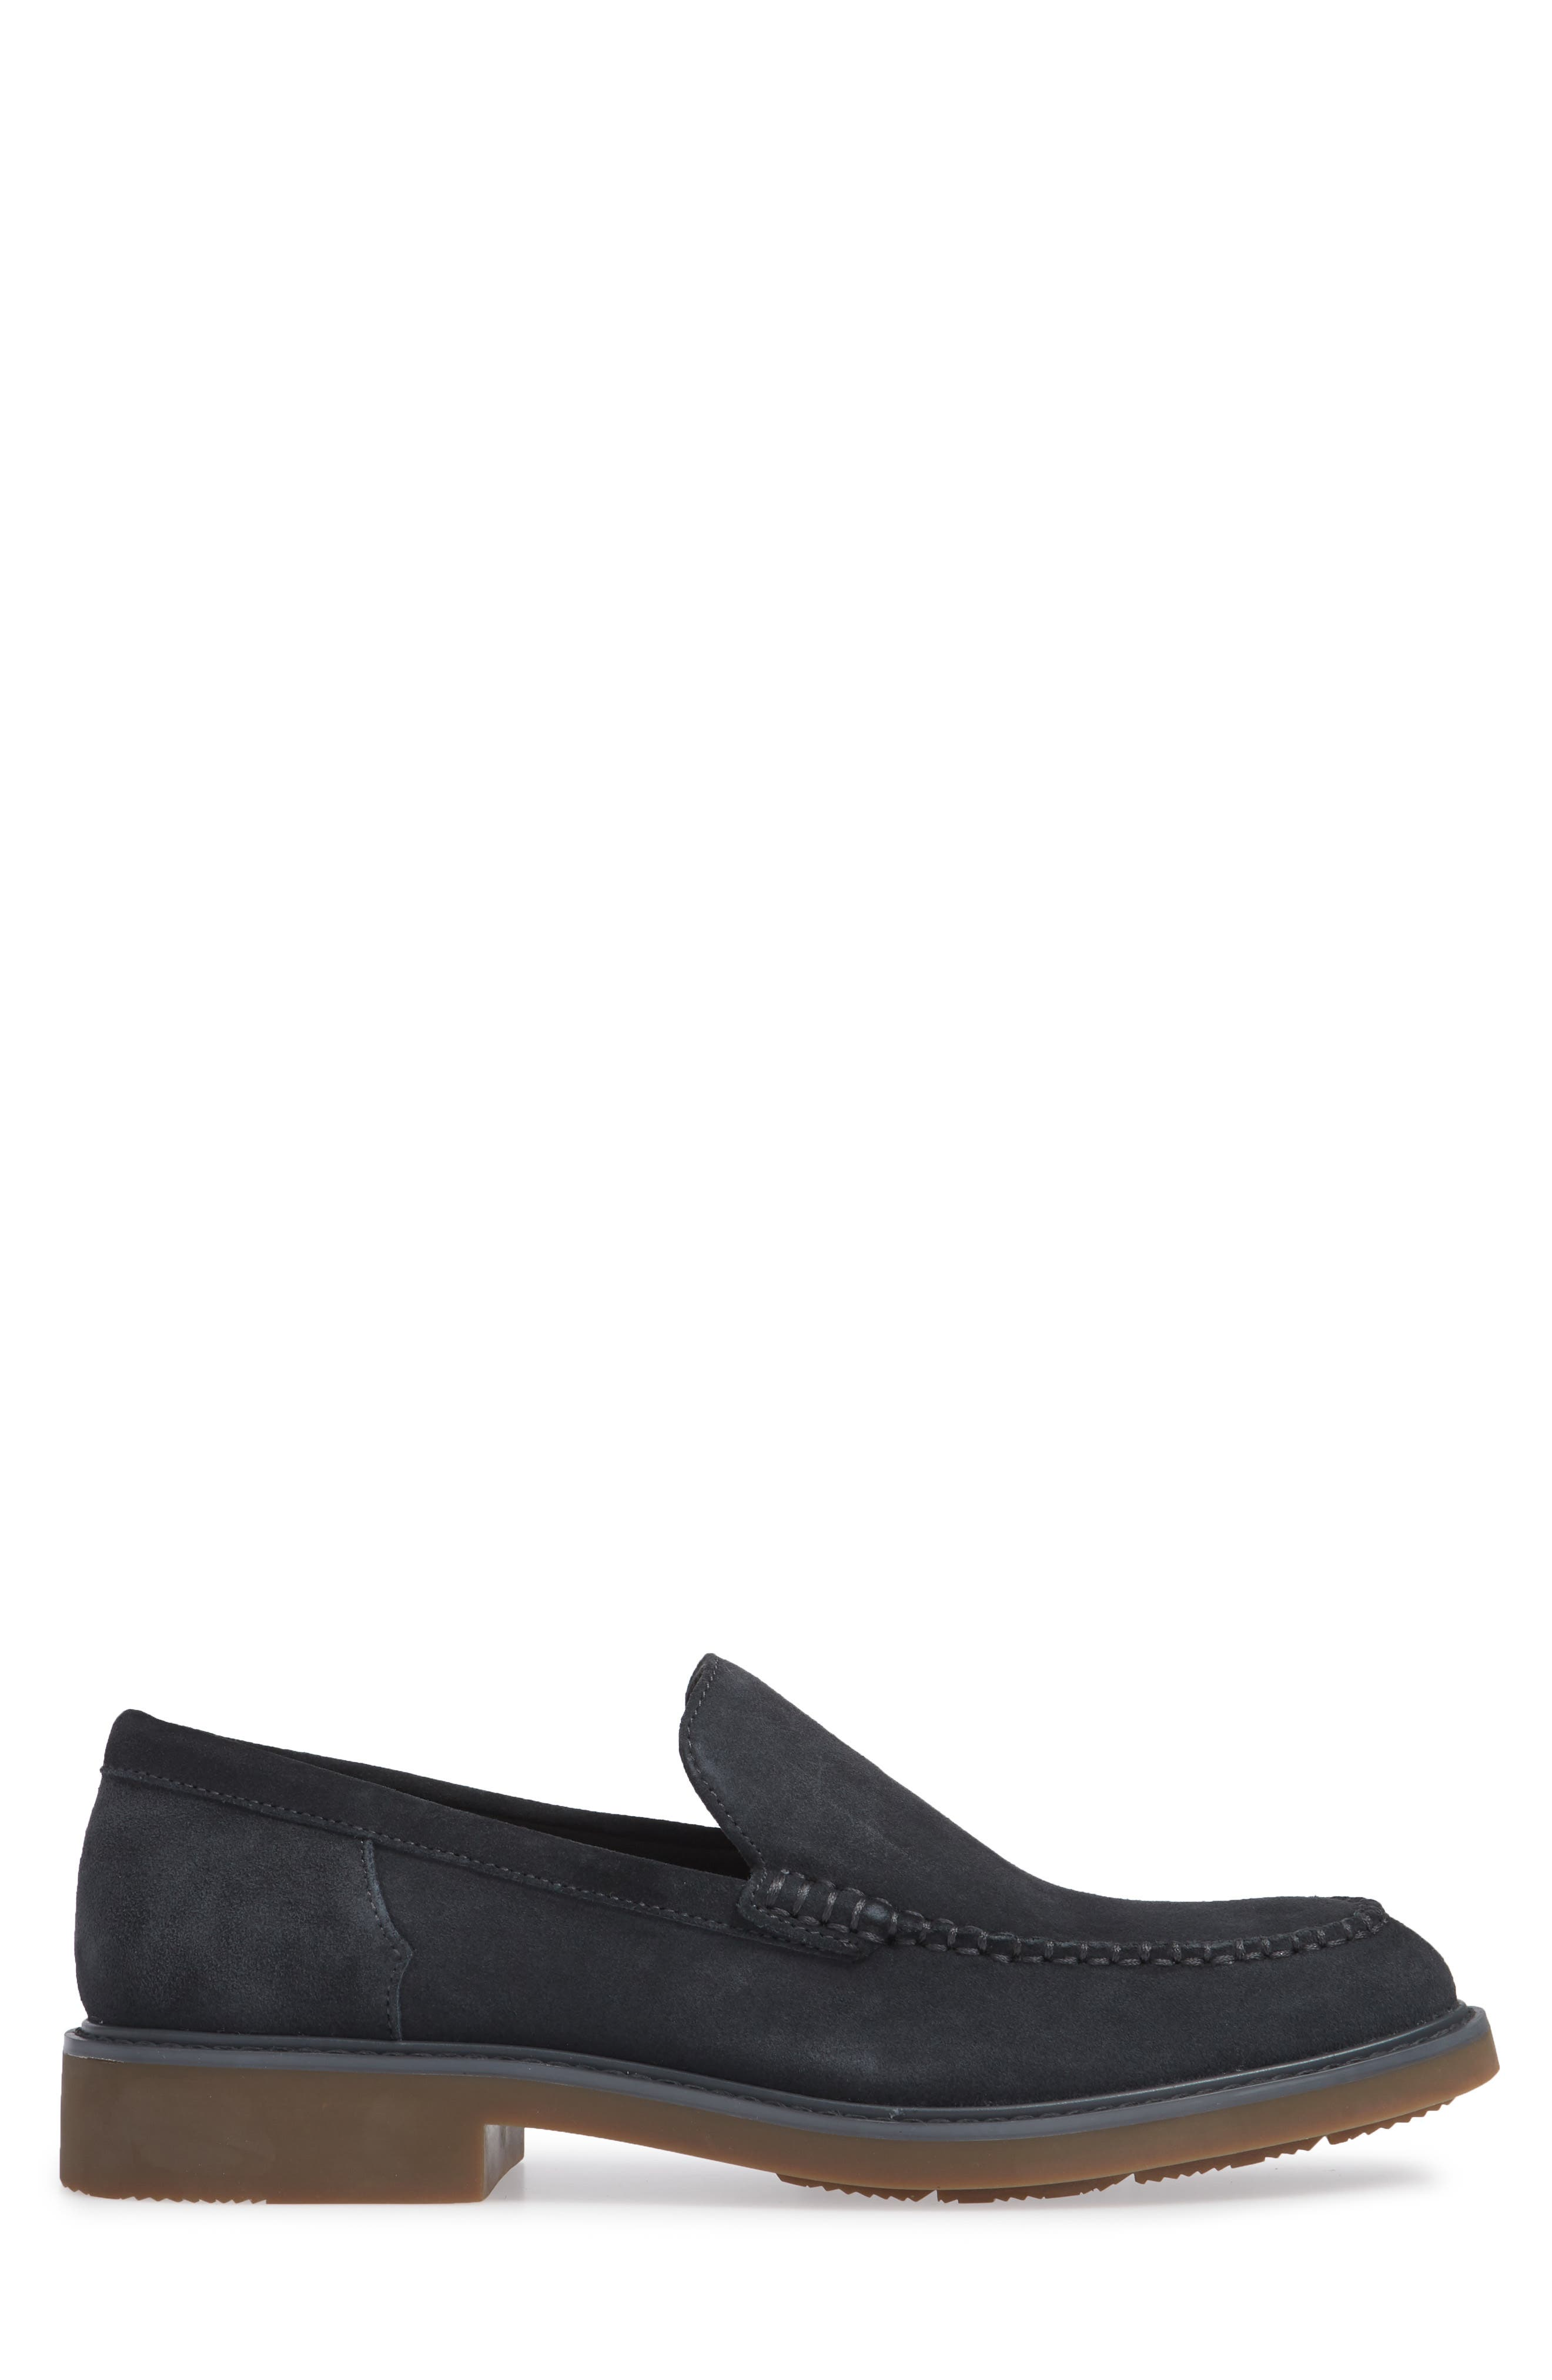 Vance Apron Toe Loafer,                             Alternate thumbnail 3, color,                             STEEL GREYSTONE CALF SUEDE